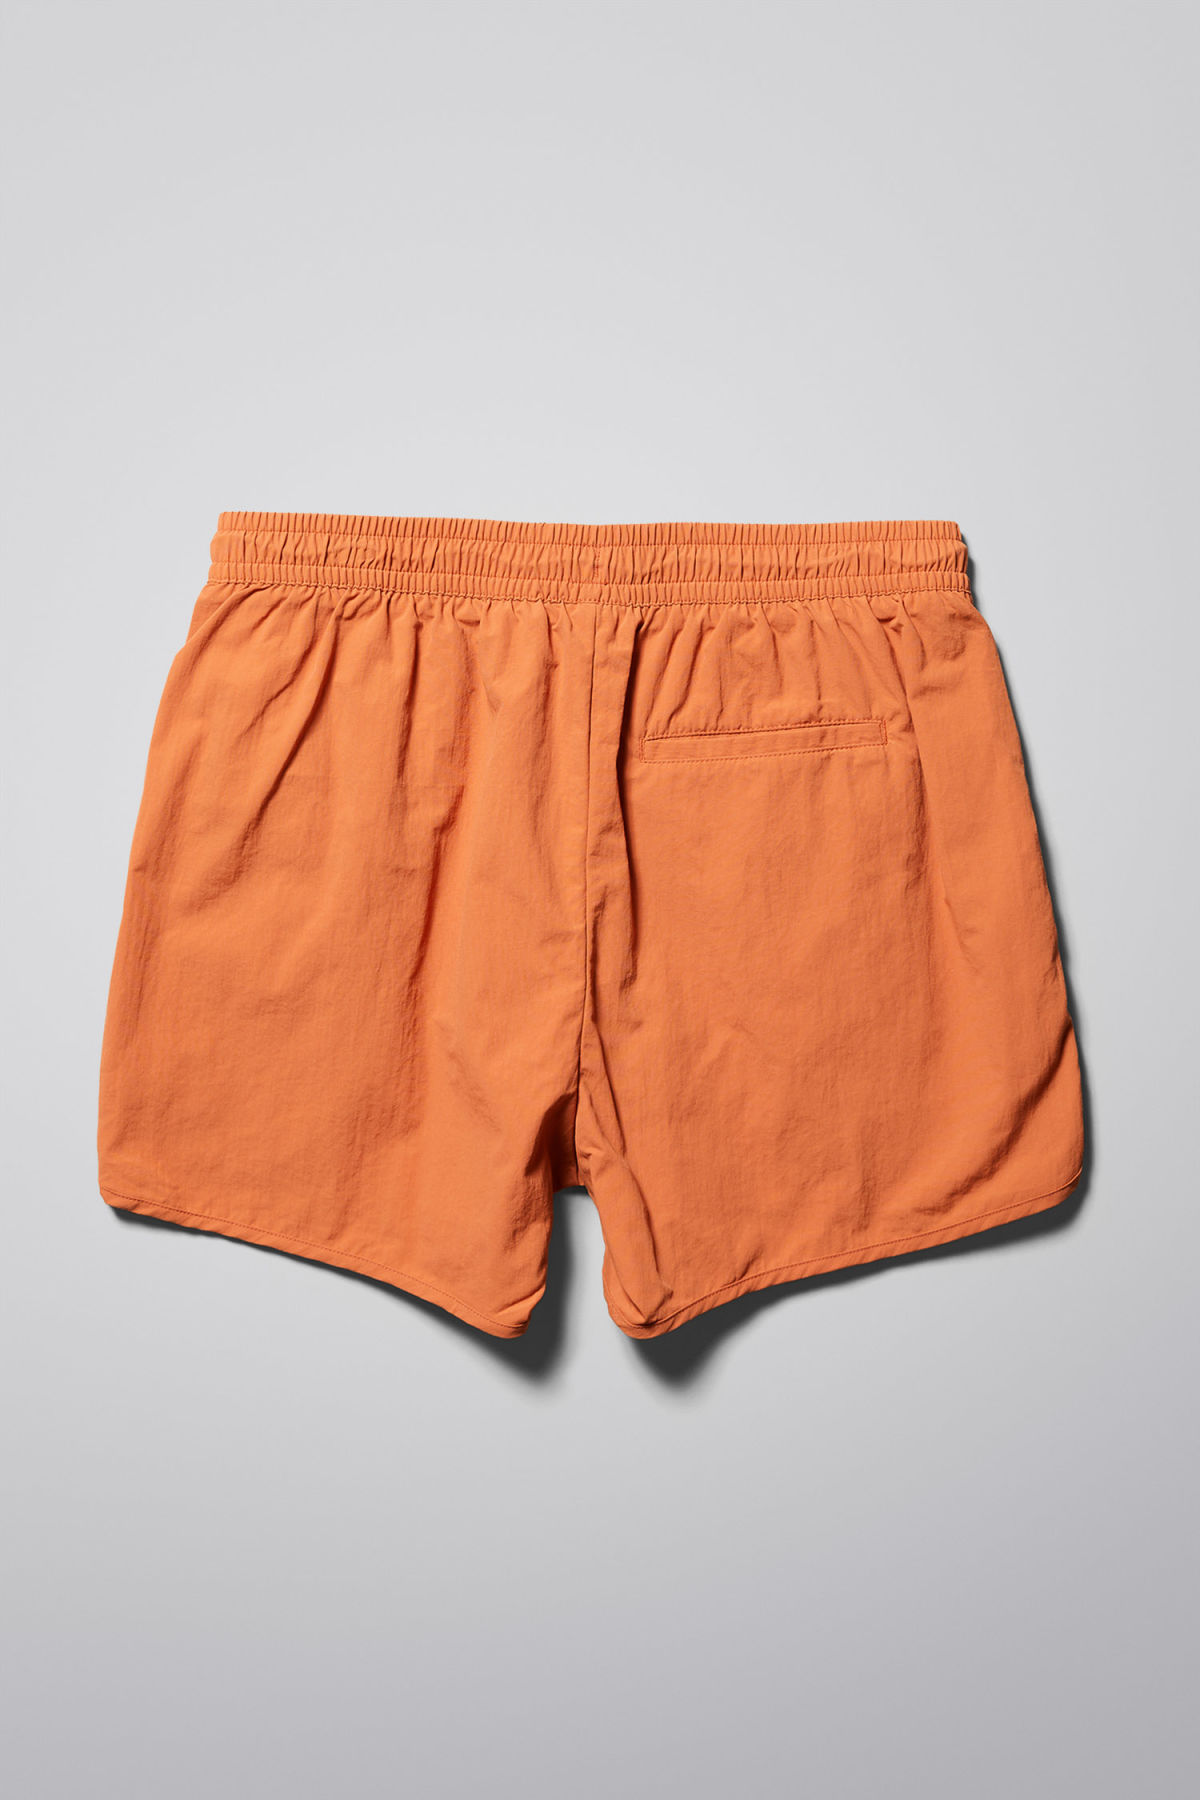 Back image of Weekday tan structure swim shorts in orange